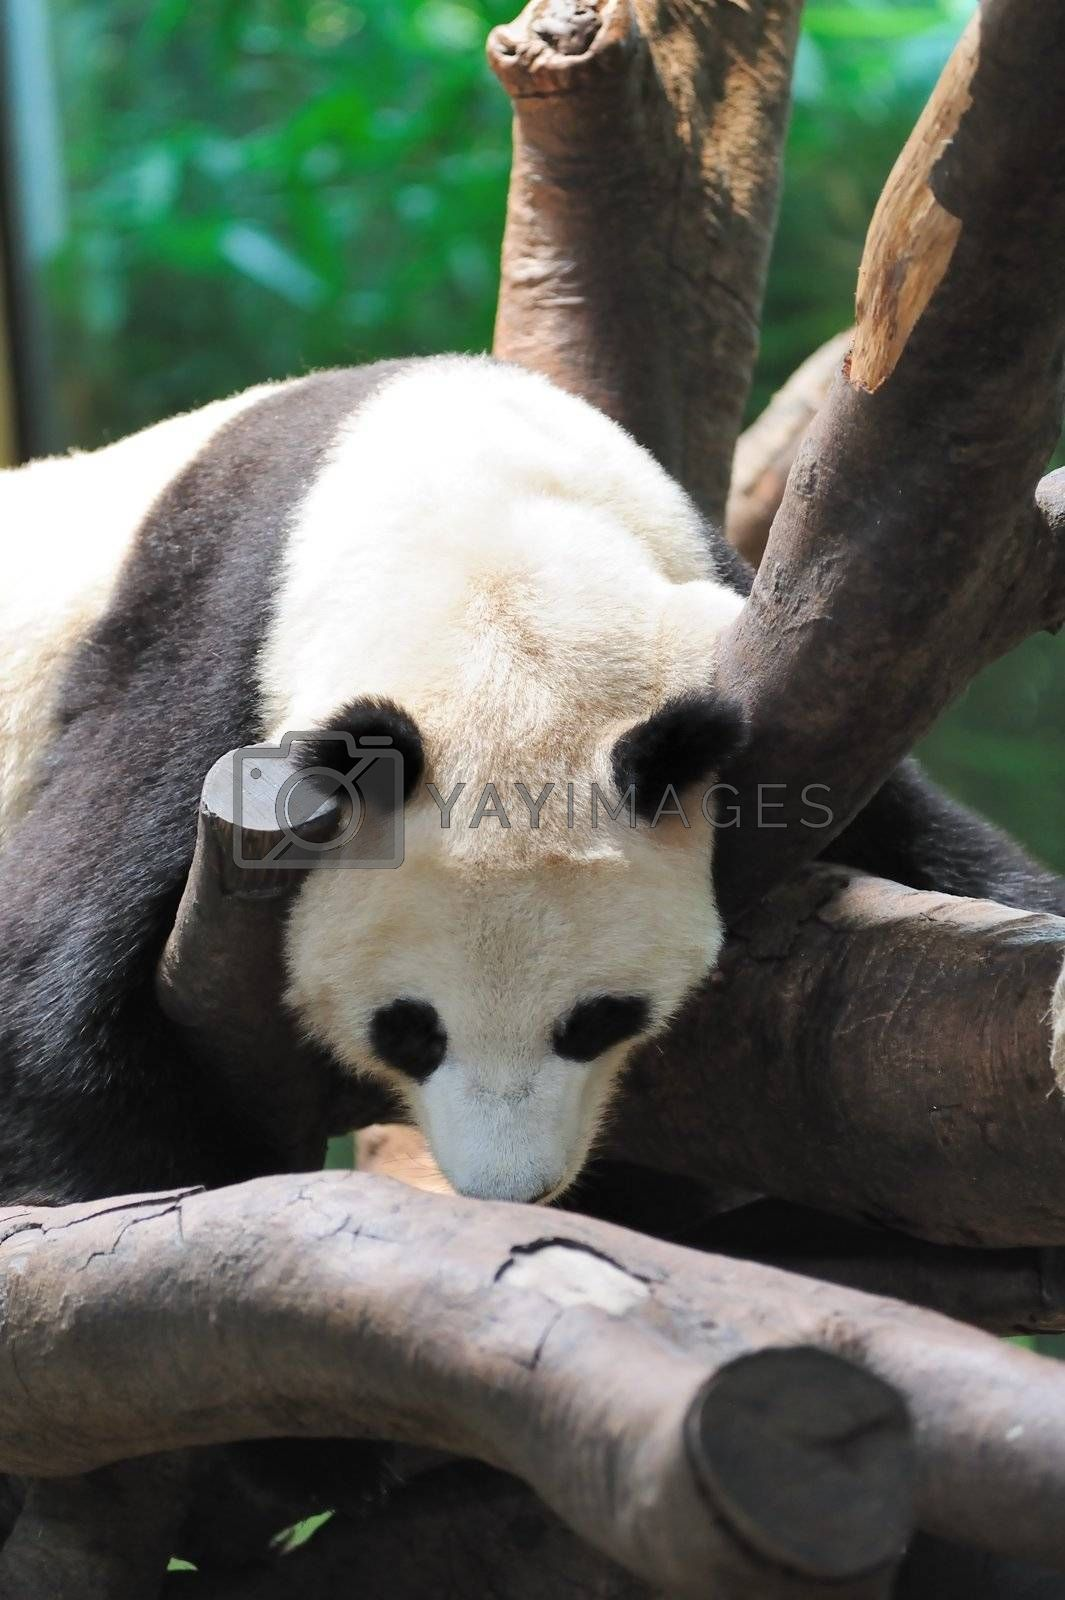 A giant panda lying on the tree branch and sleeping